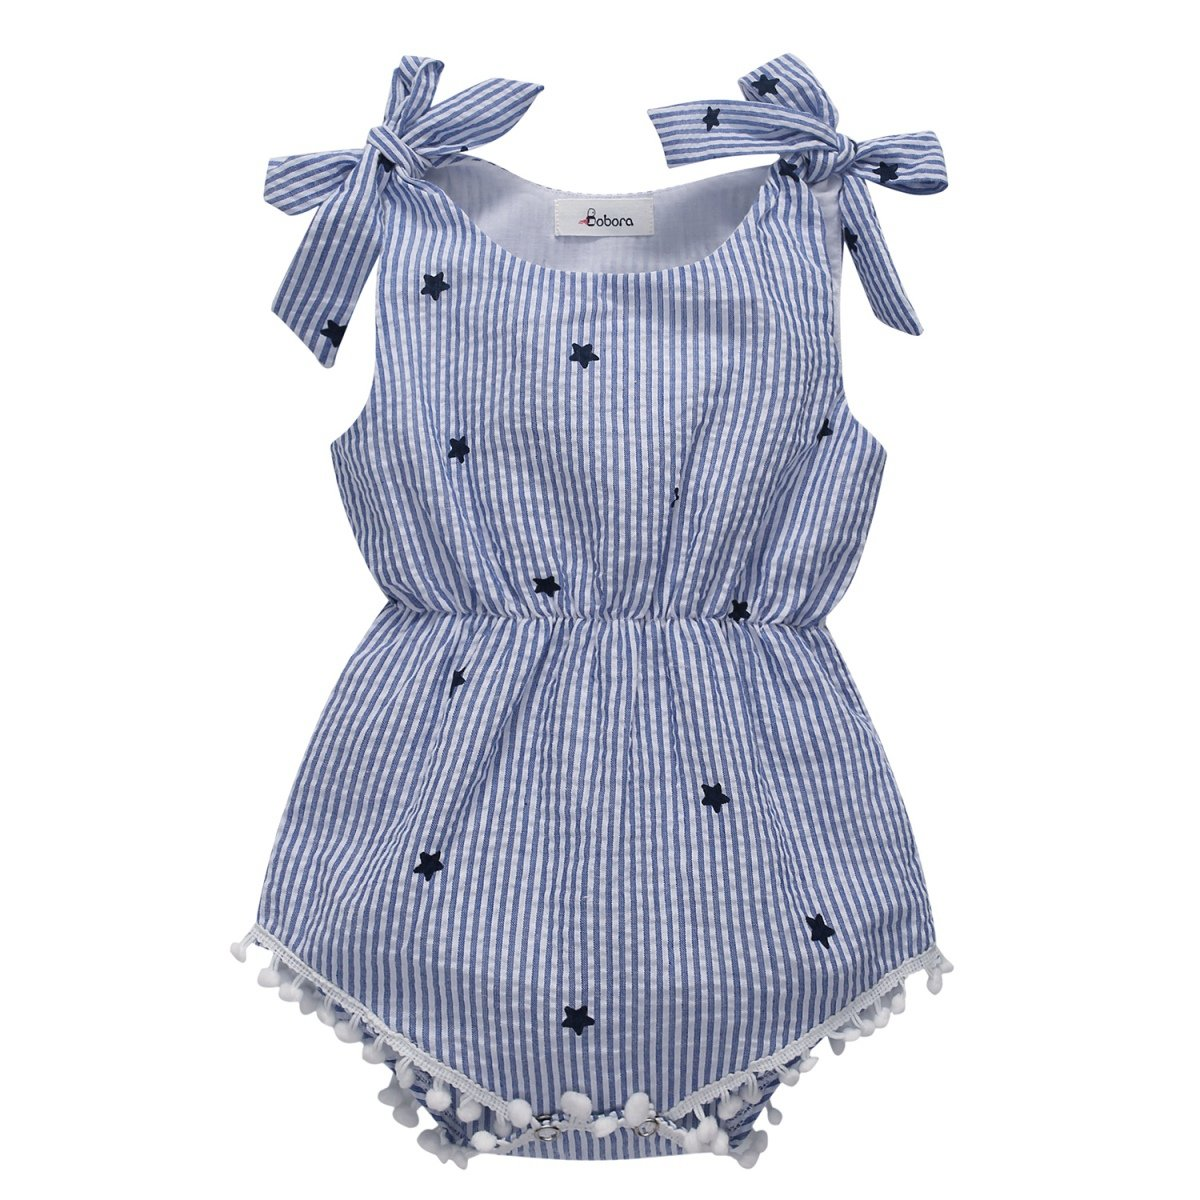 Weixinbuy Infant Baby Girl Bowknot Tassel Stripe Romper Clothes Bodysuit Outfits Blue by Weixinbuy